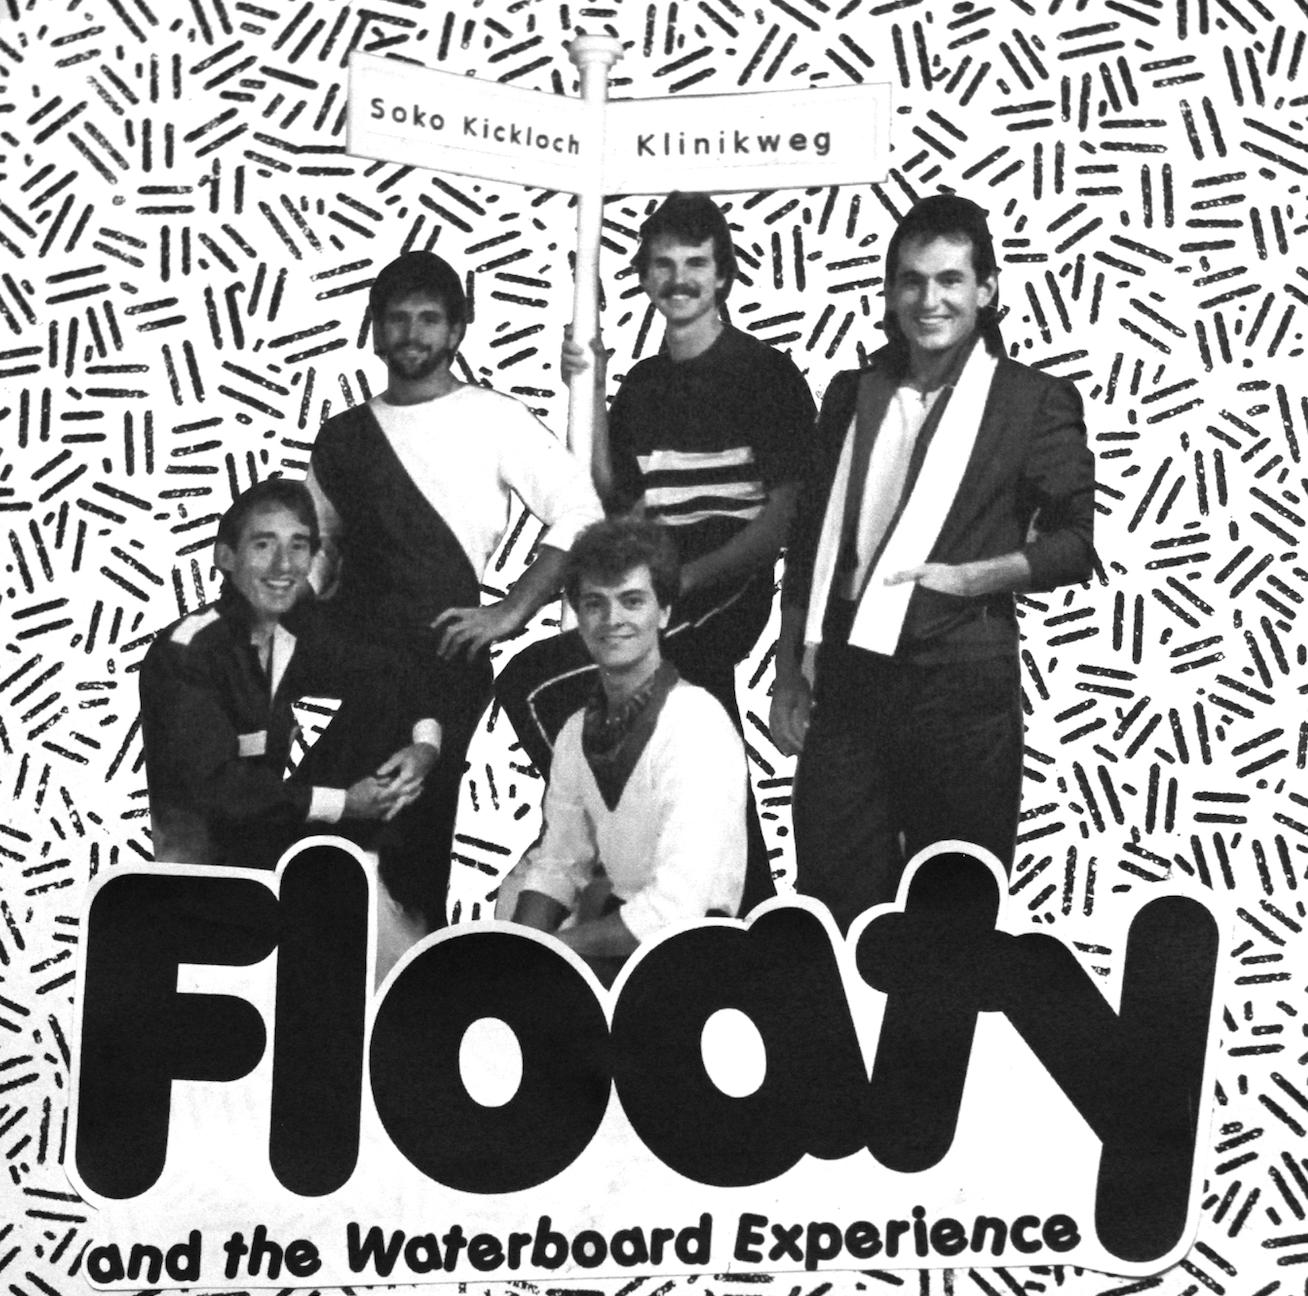 Bei der Floaty and the Waterboard Experience gibts Musik am Bootsanleger!